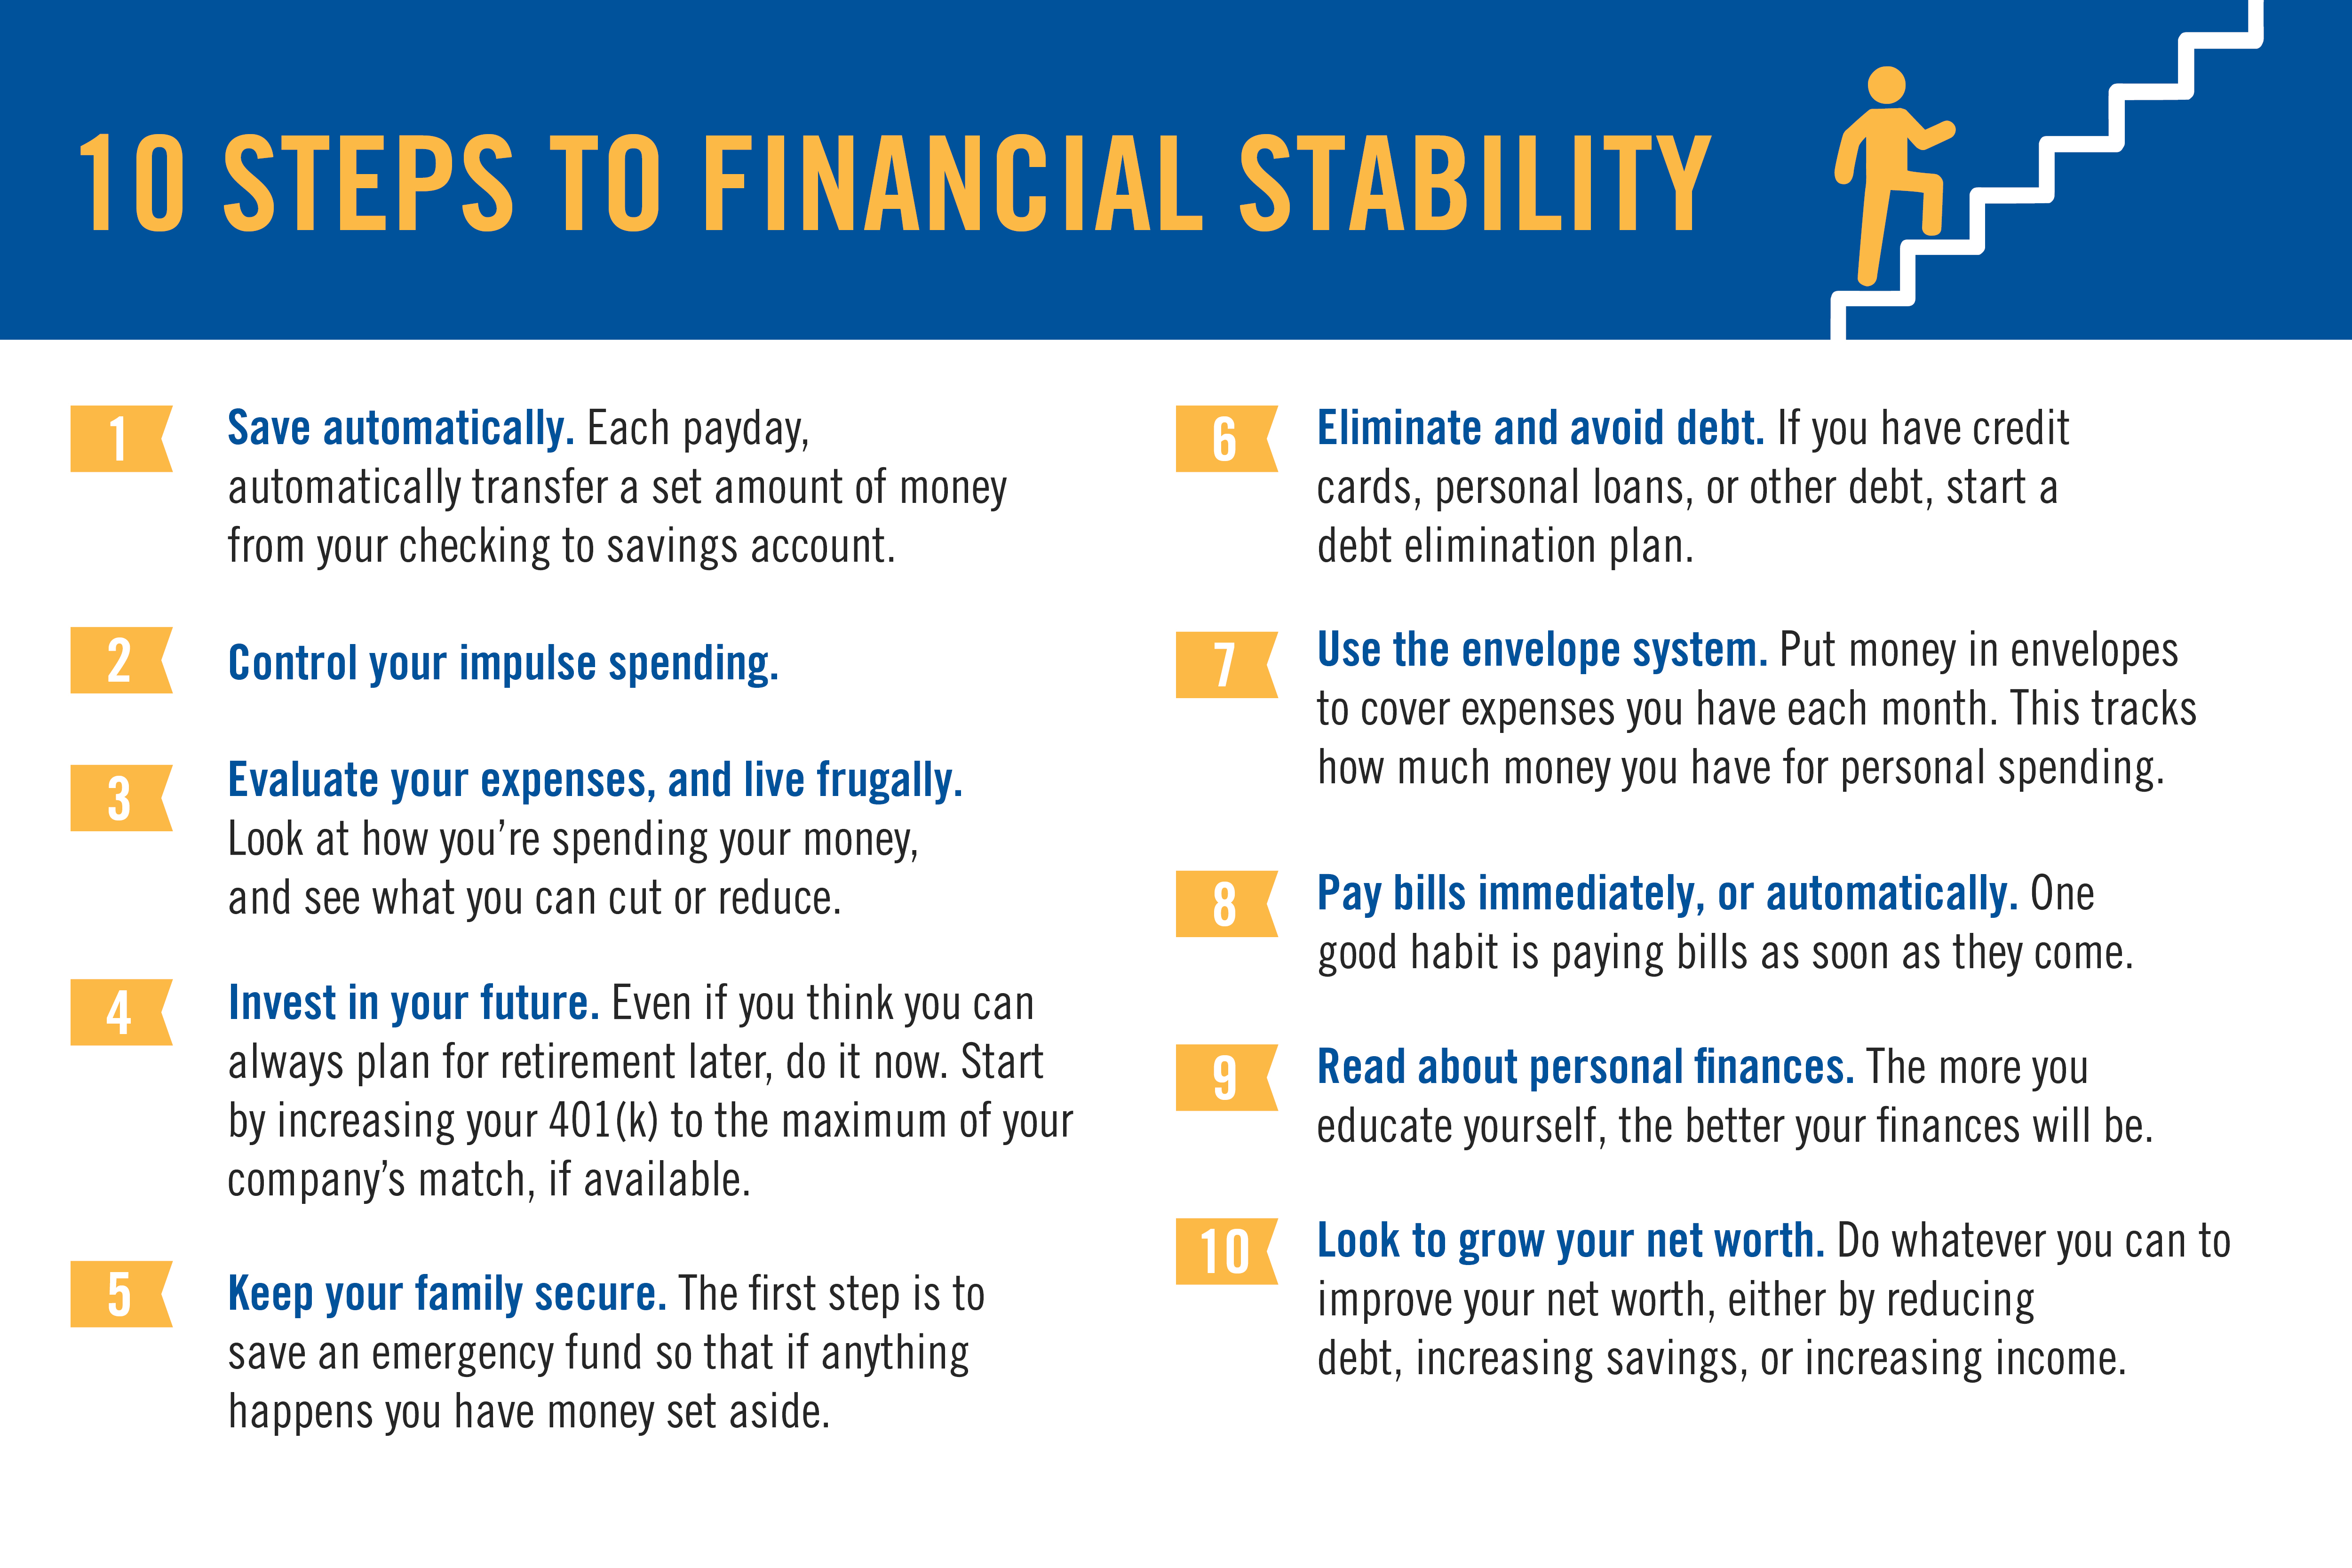 10 Steps to Financial Stability & Savings Tips